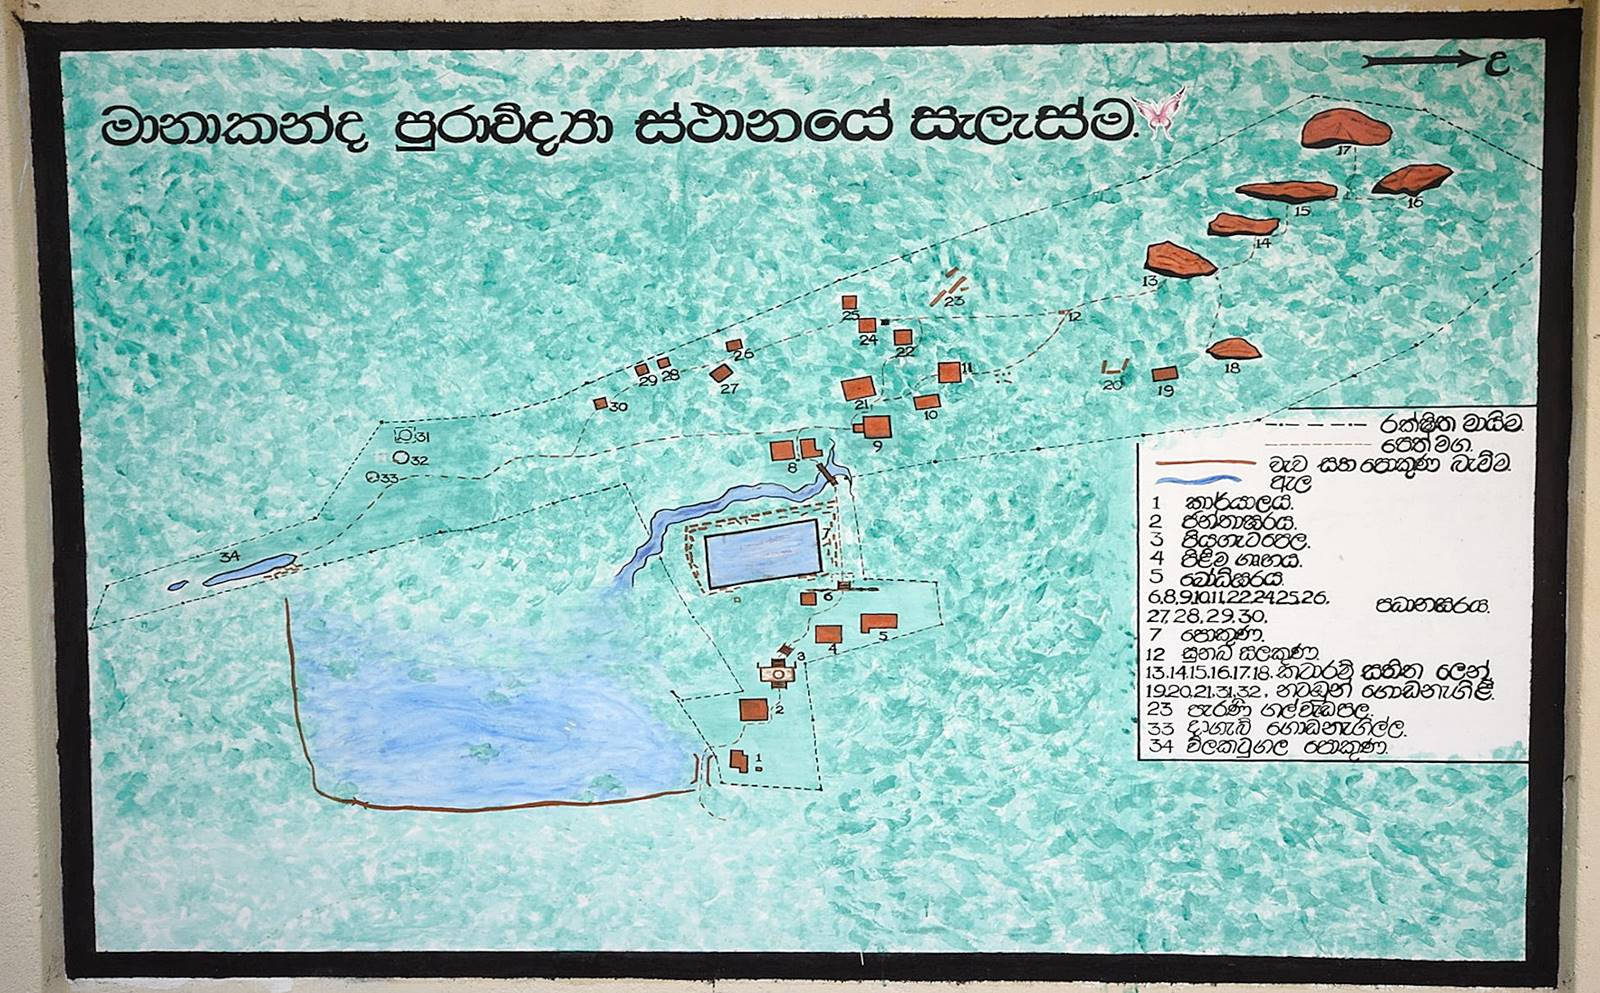 Map of the Manakanda Archaeological Site